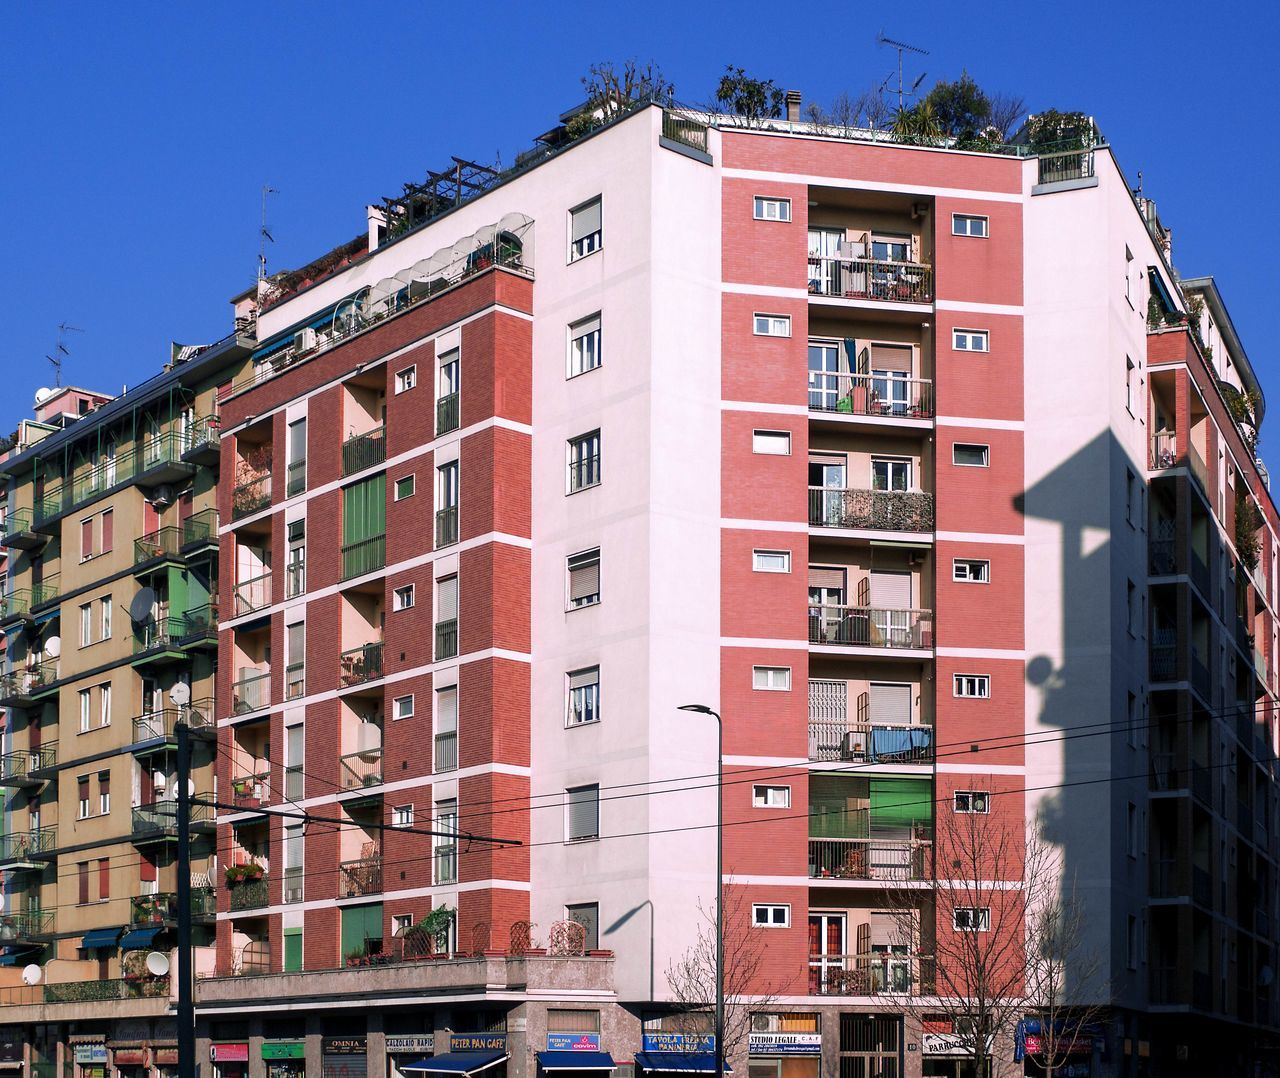 Apartments Architecture Balconies Blinds Brick Building Building Building And Sky Building Exterior Building Structures Built Structure City Clear Sky Condominium Day Facade Building Multicolor No People Outdoors Palace Residential Building Street Sunlight Windows